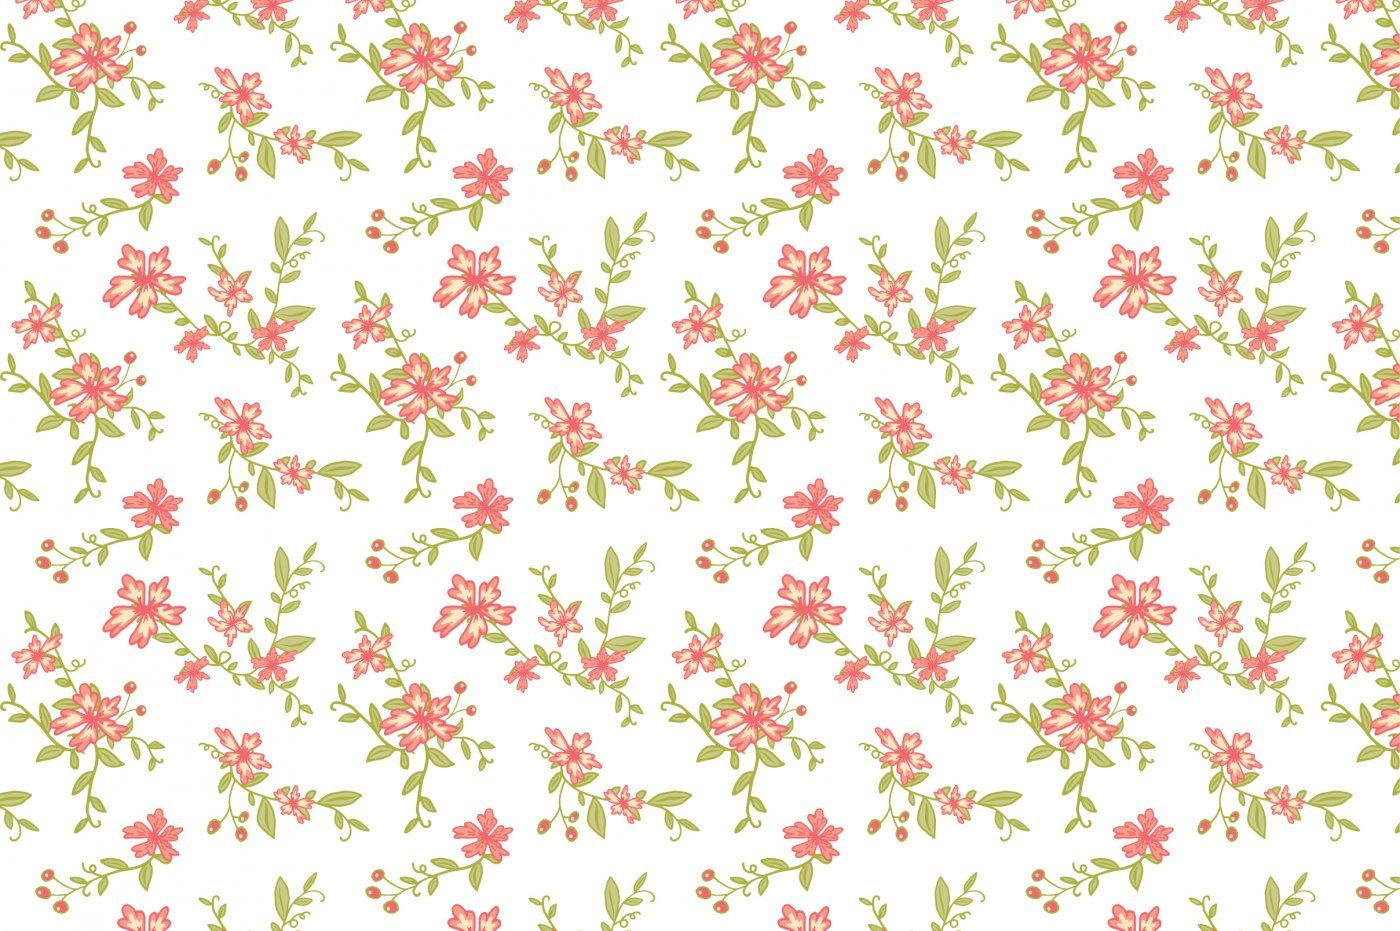 Seamless Vintage Floral Patterns By The Pen and Brush ...